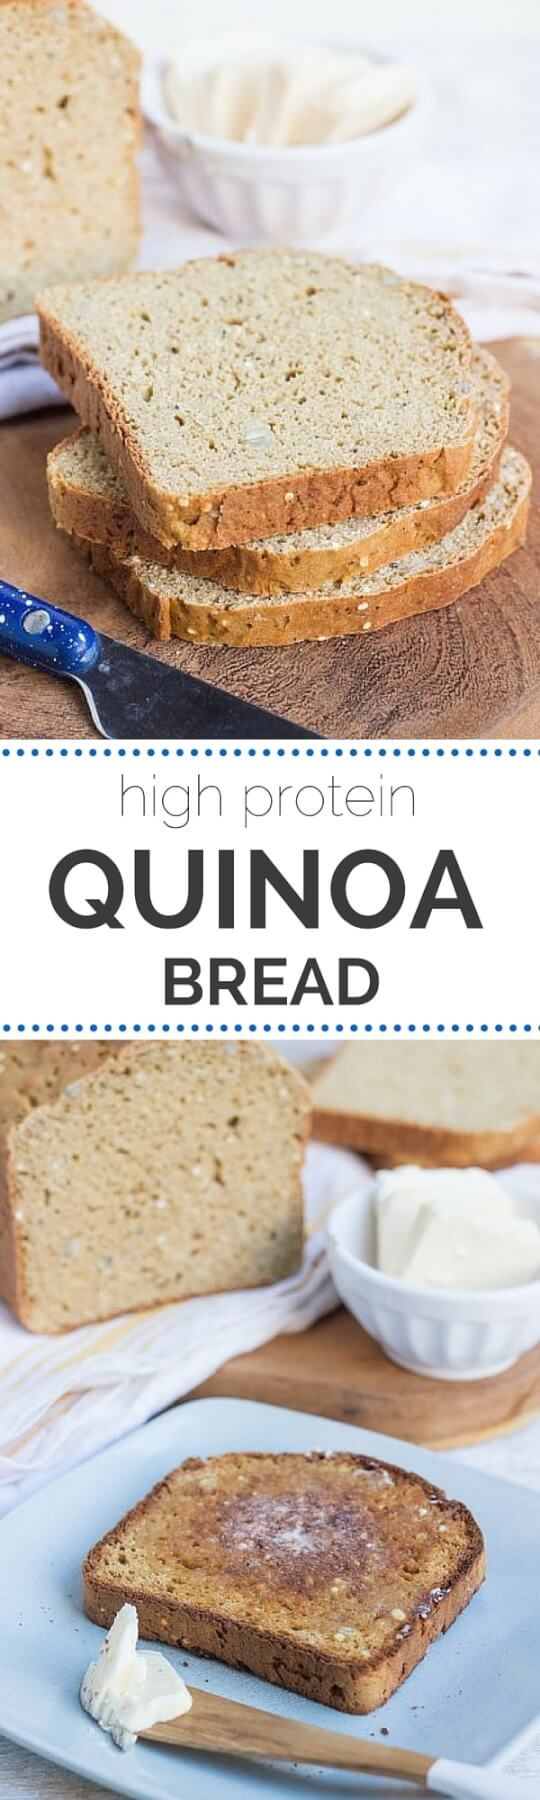 High Protein Gluten-Free Quinoa Bread Recipe